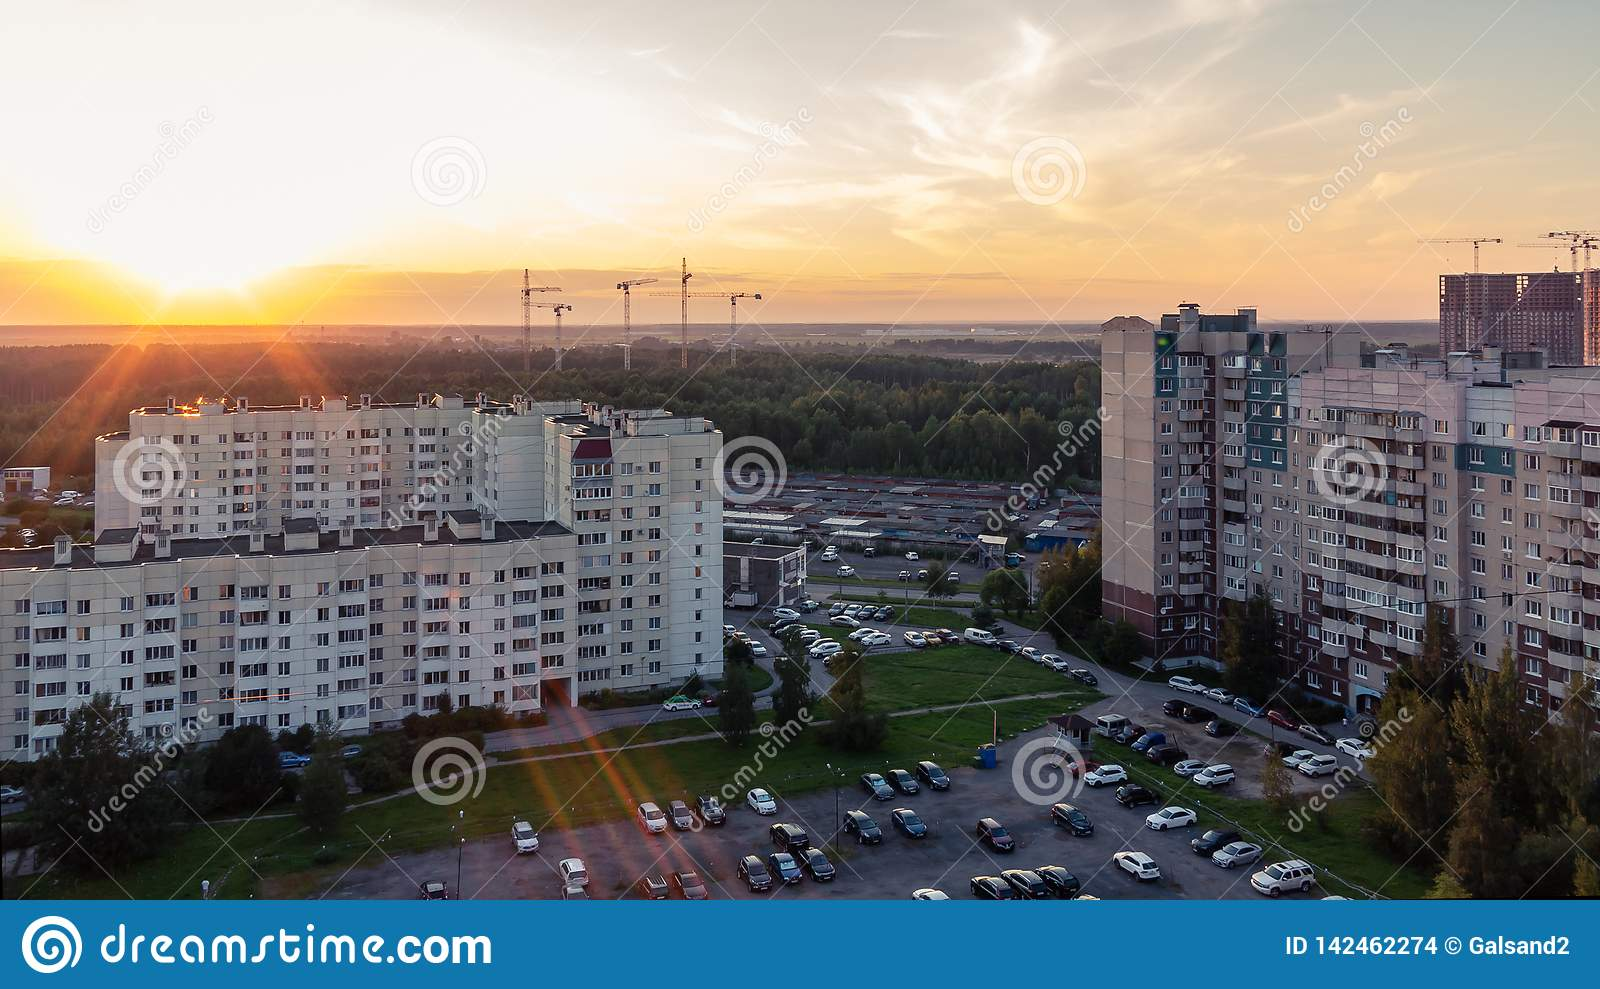 St. Petersburg, Russia - July 24, 2018: City landscape - high-rise buildings on the outskirts of the city at sunset